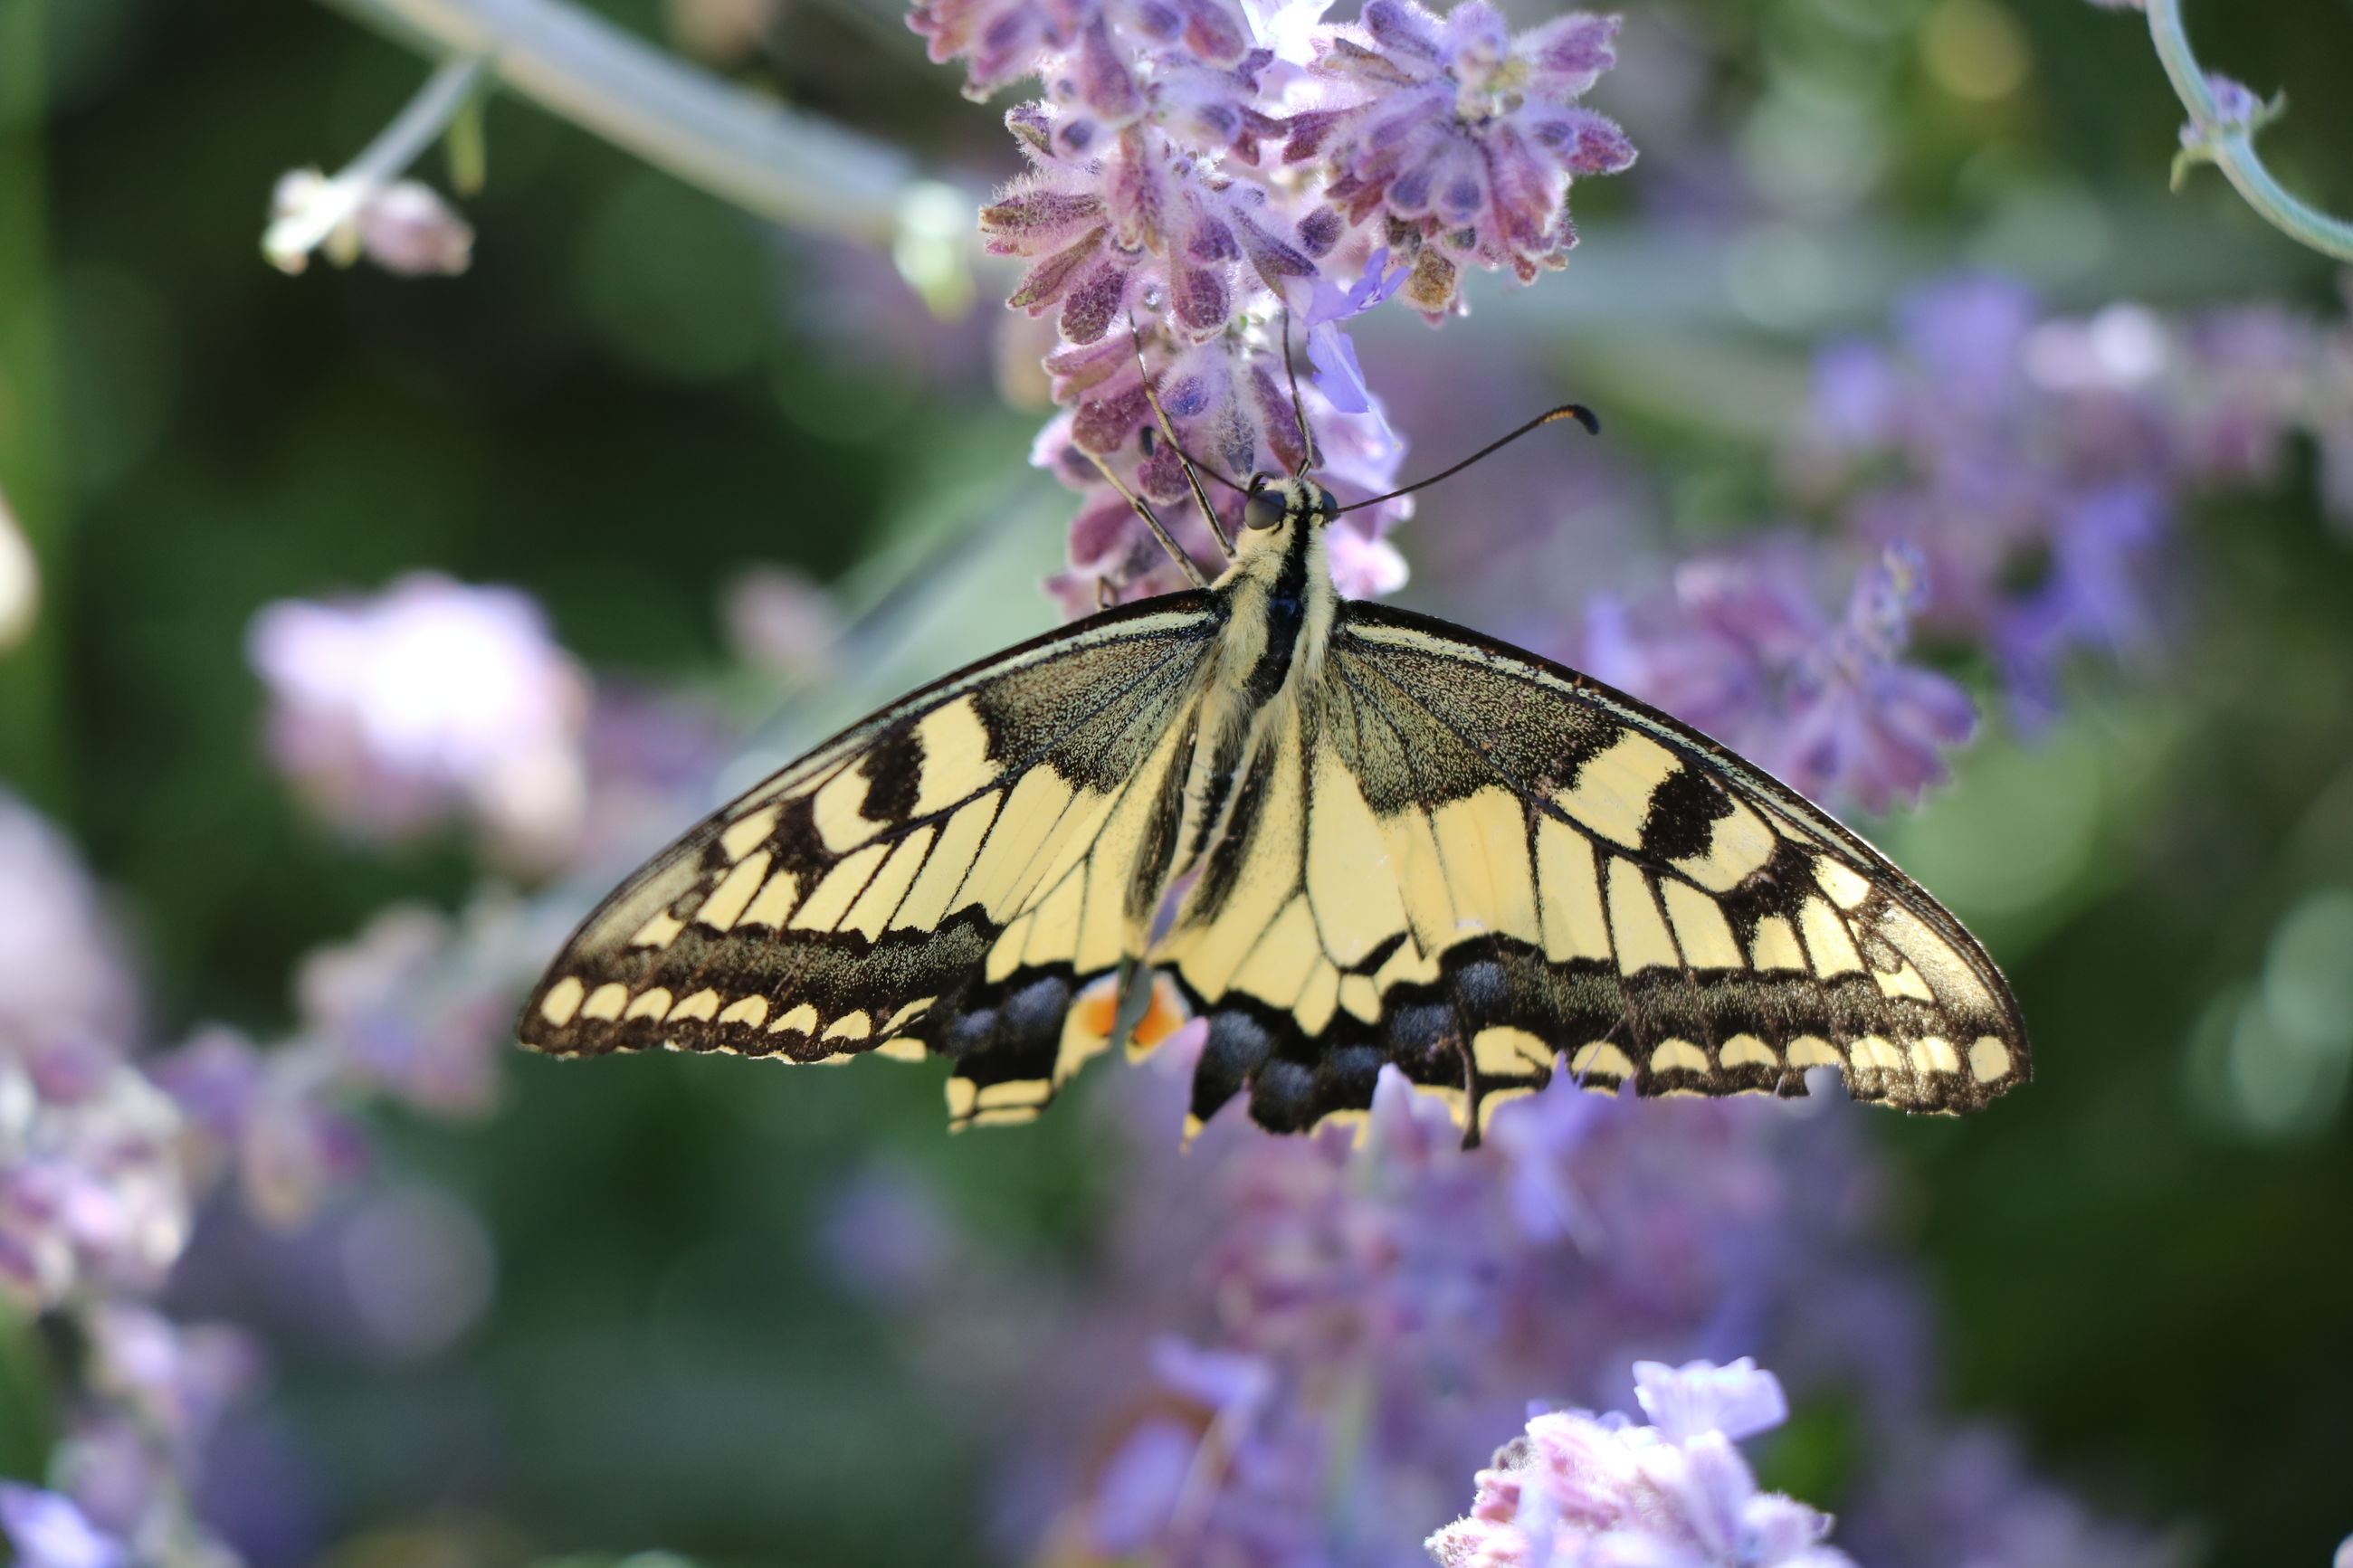 butterfly - insect, insect, fragility, purple, one animal, flower, animal themes, animals in the wild, focus on foreground, beauty in nature, nature, butterfly, close-up, no people, freshness, pollination, plant, day, animal wildlife, growth, outdoors, spread wings, perching, flower head